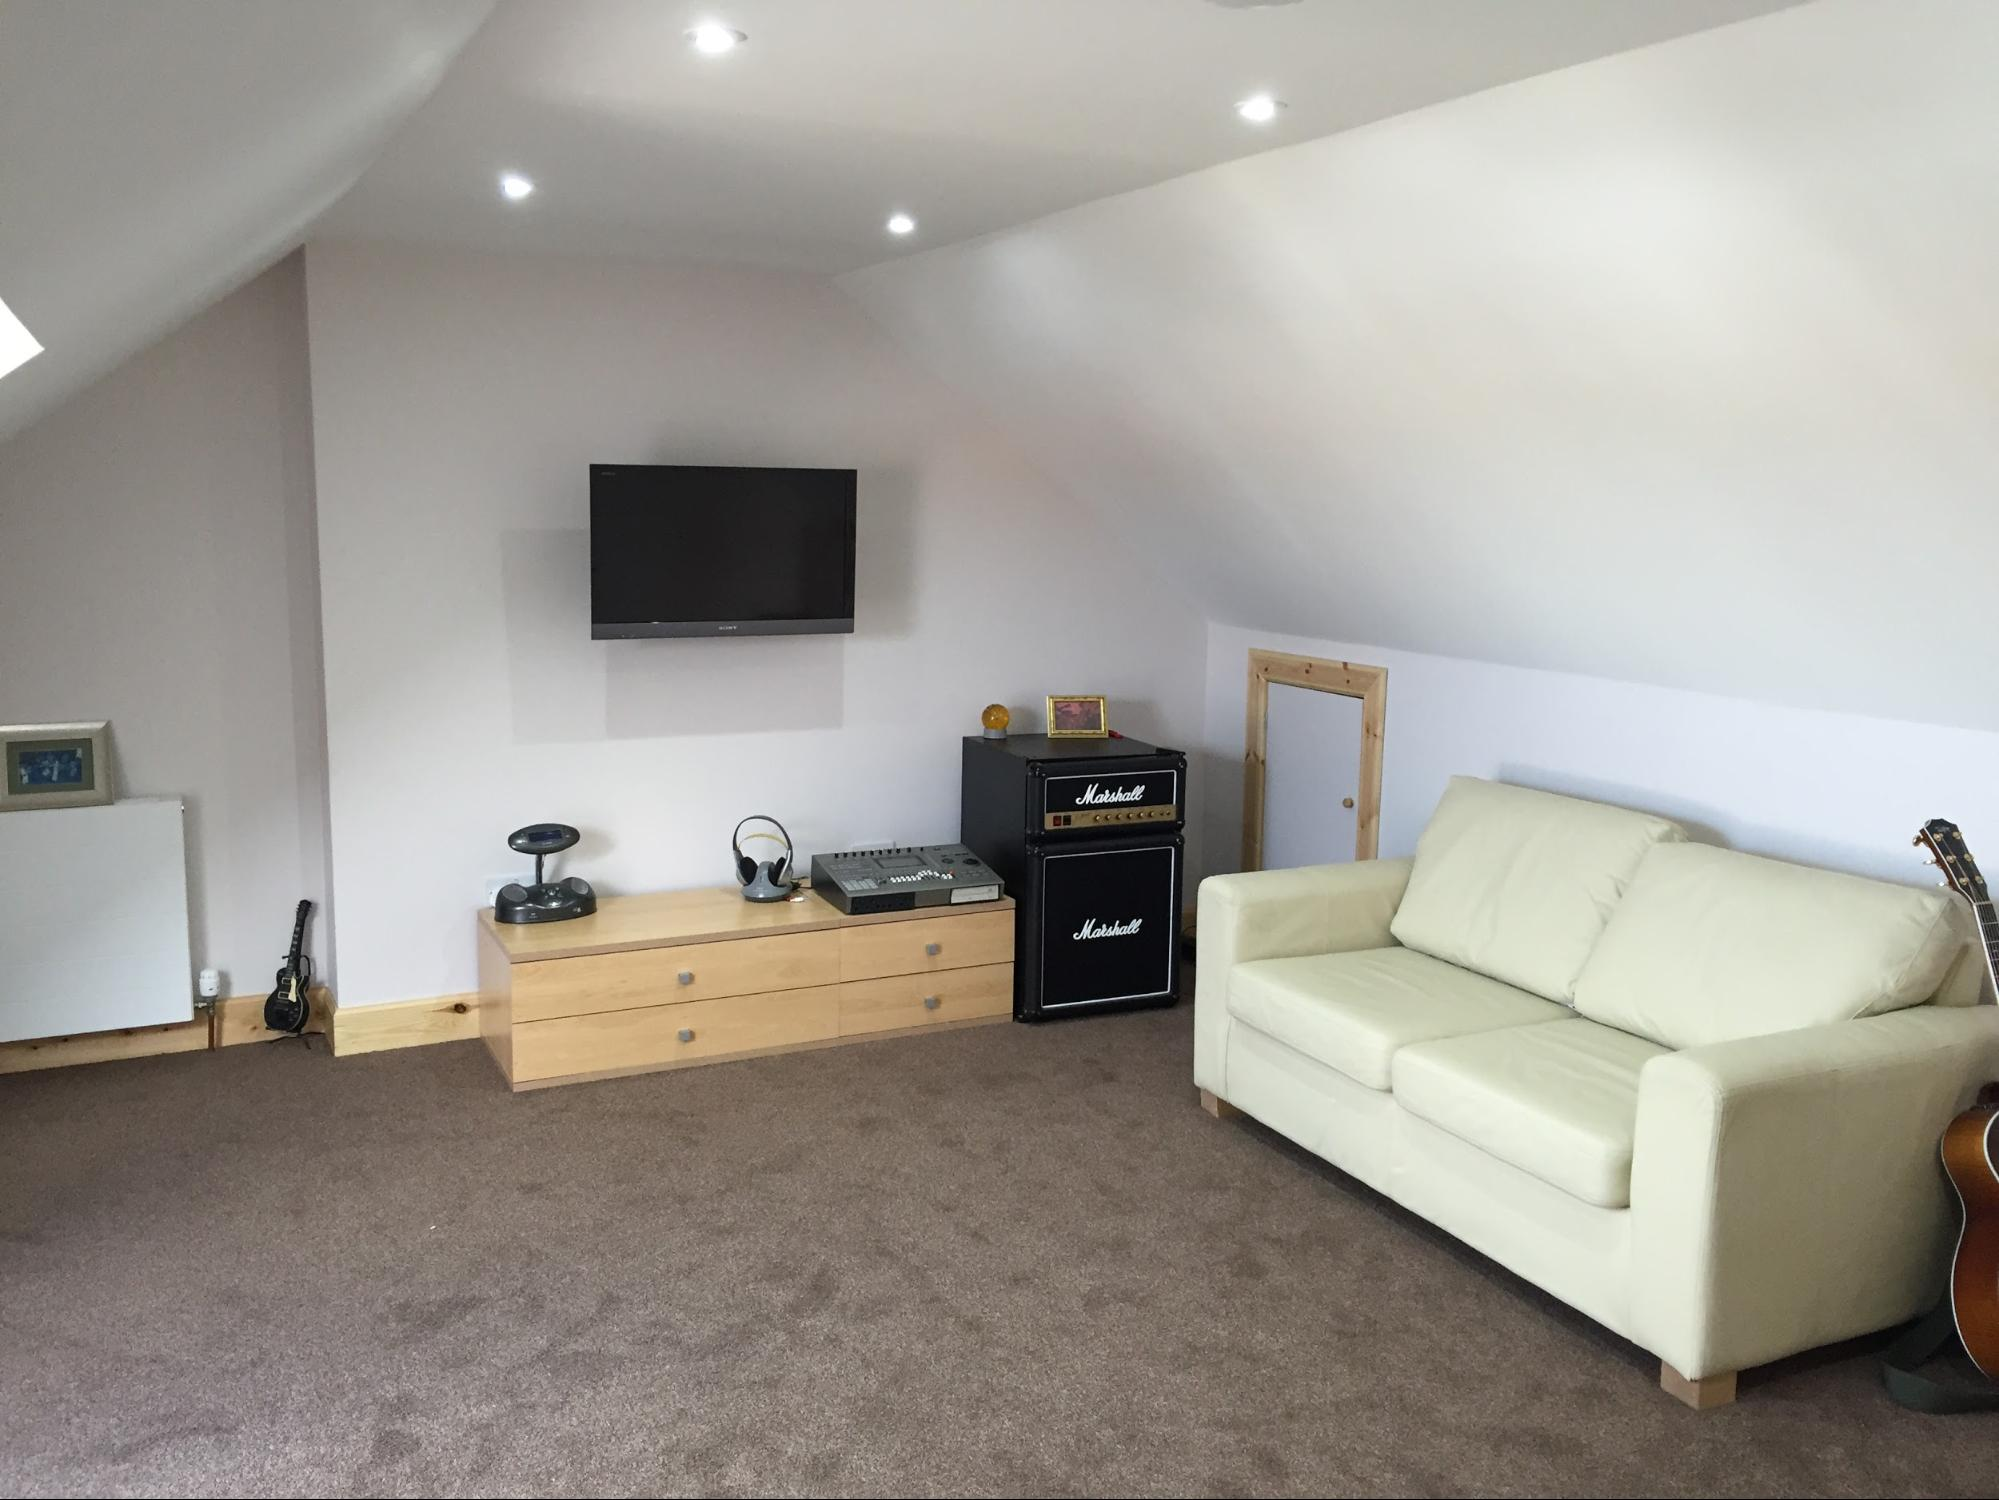 Loft conversion living area with couch and music equipment